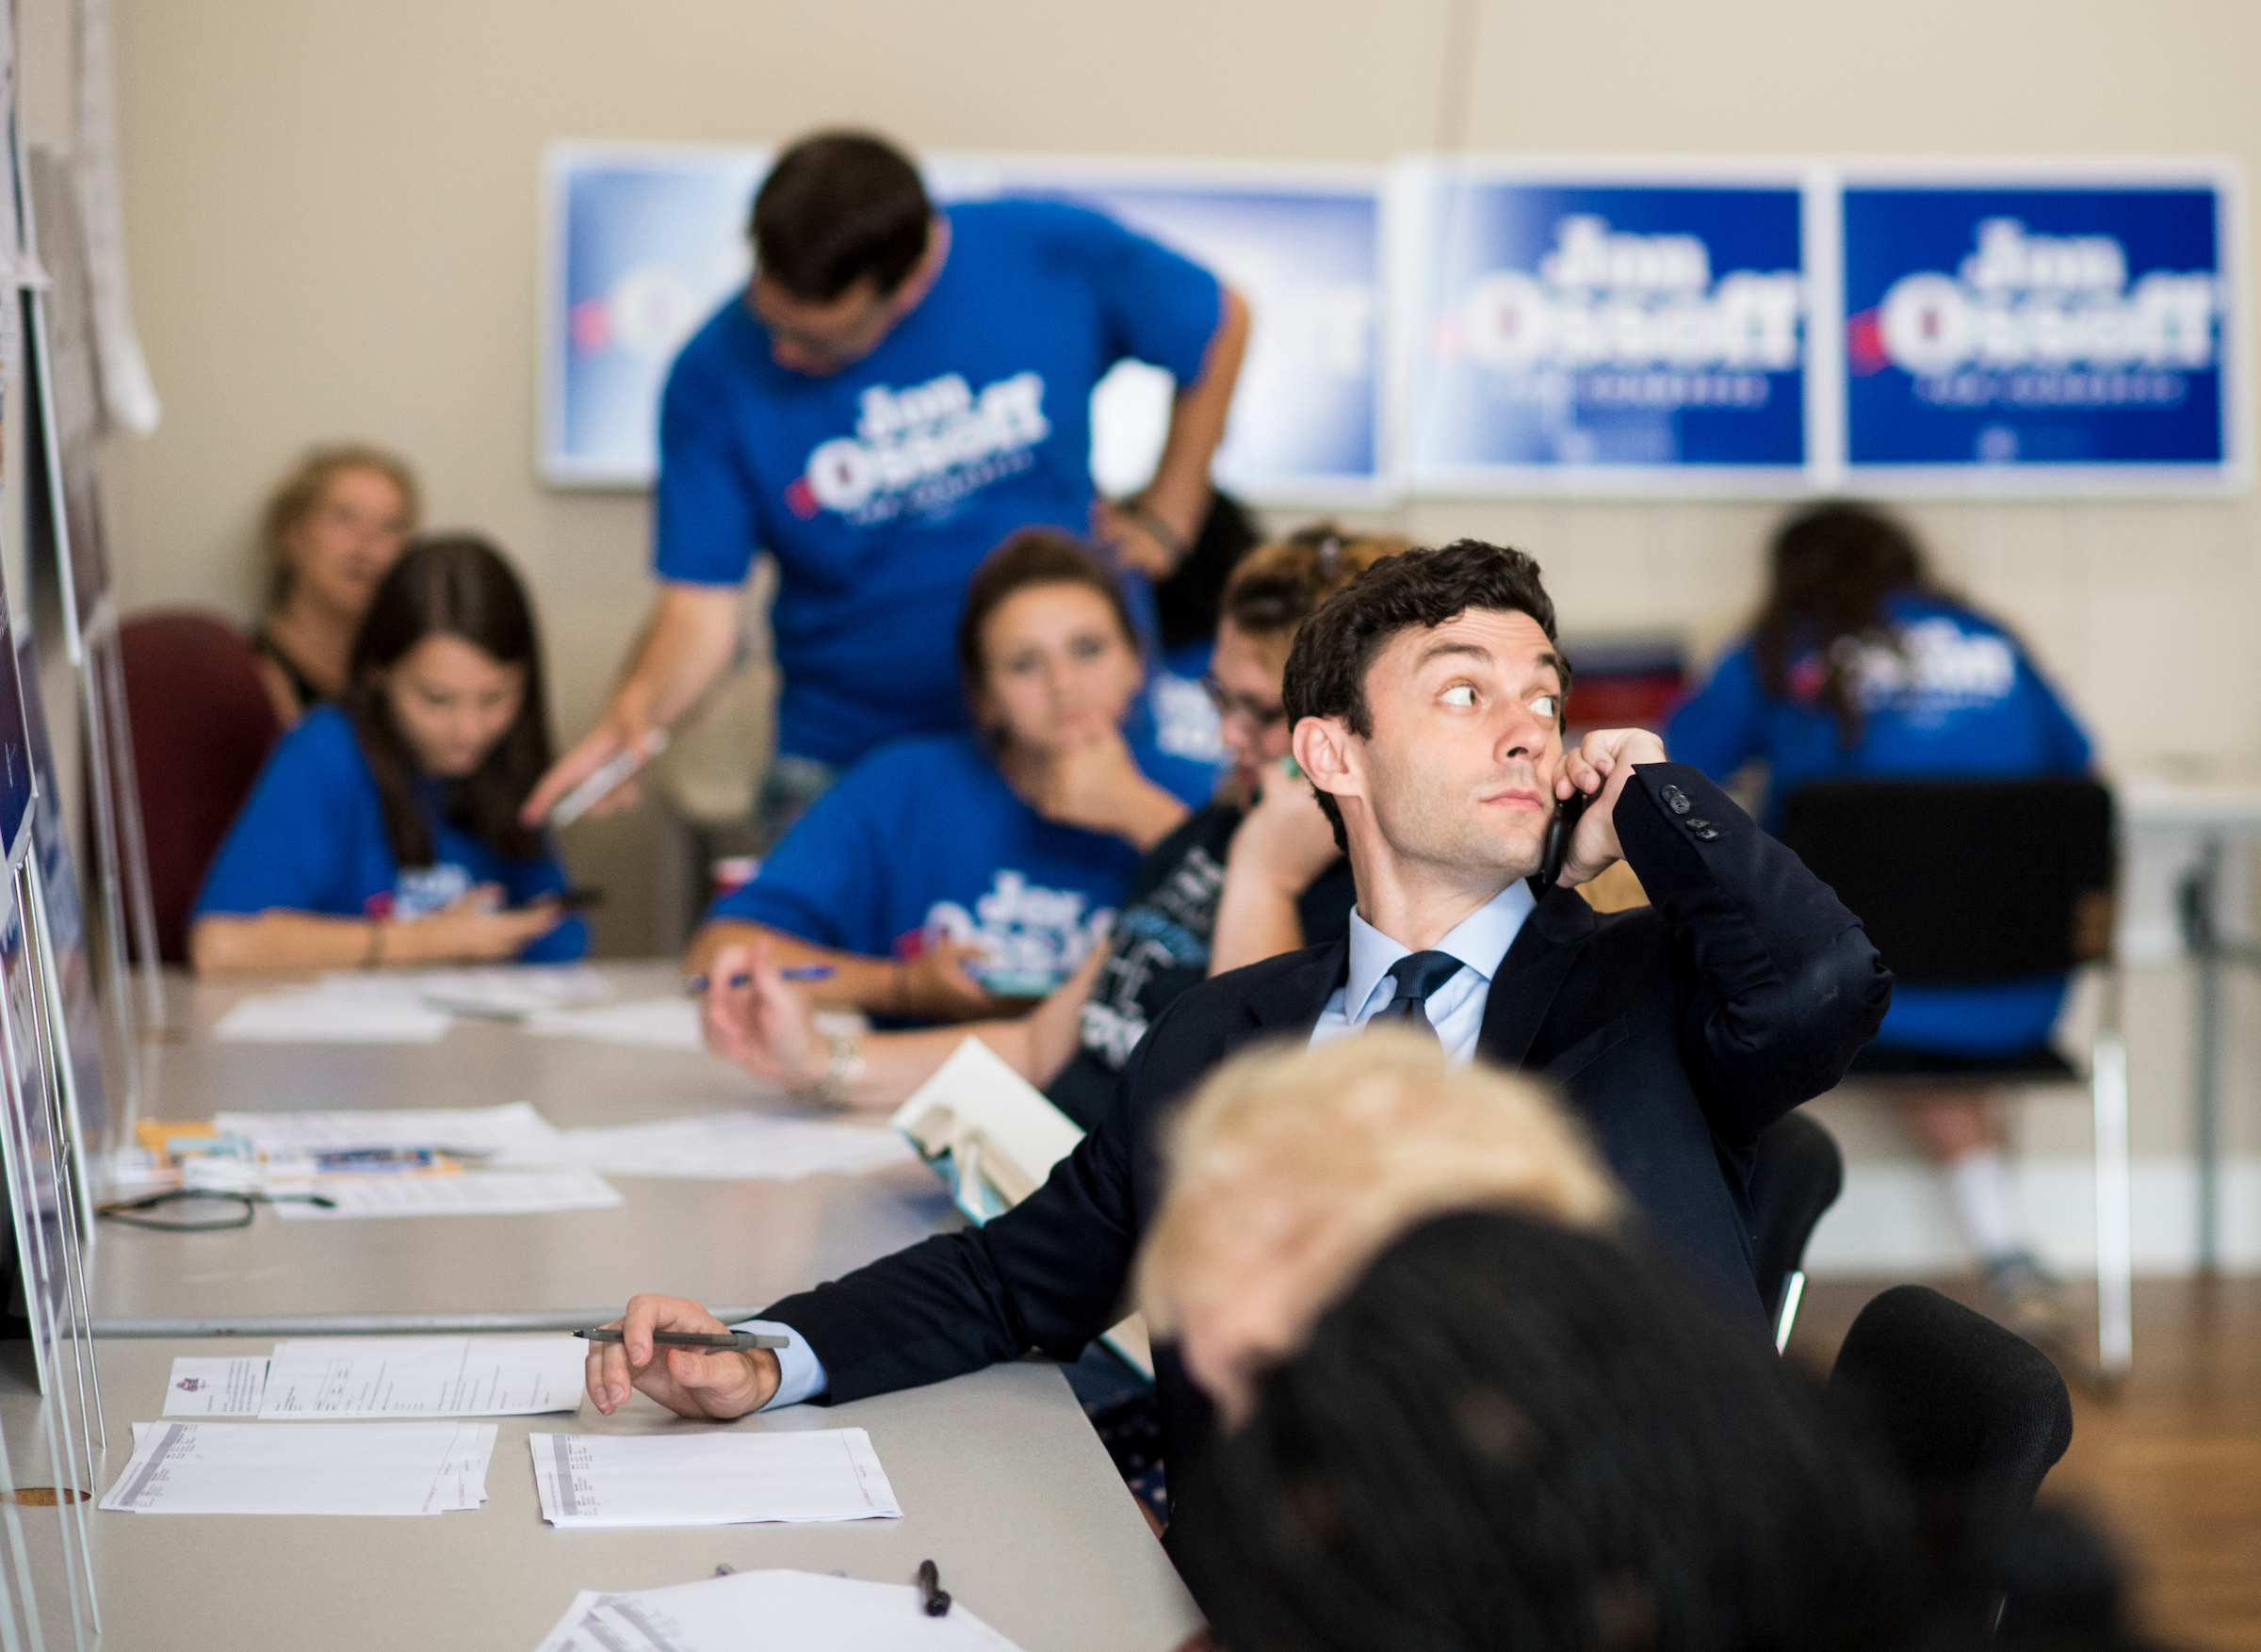 Jon Ossoff, Democratic candidate for Georgia's 6th Congressional district, makes calls to voters in his Marietta, Ga., campaign office on special election day, June 20, 2017. Ossoff is facing off against Republican Karen Handel in the special election to fill the seat vacated by current HHS Secretary Tom Price. (Photo By Bill Clark/CQ Roll Call)